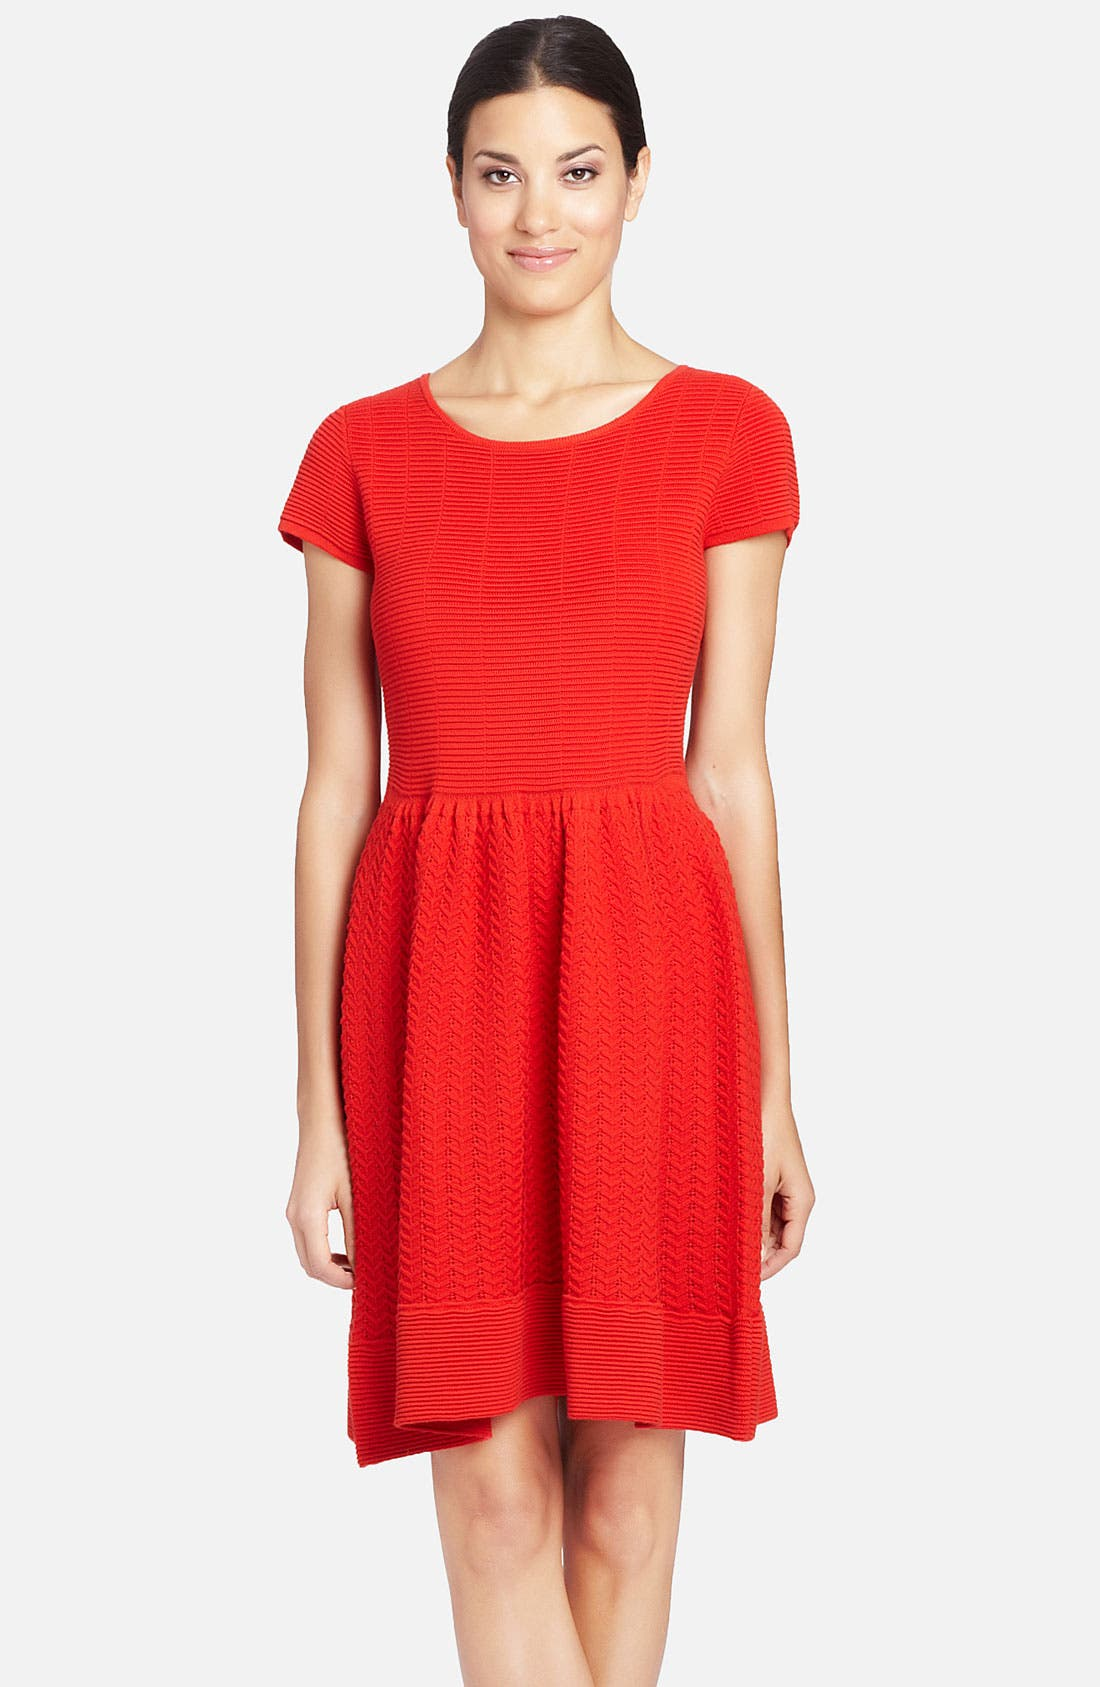 Alternate Image 1 Selected - Cynthia Steffe 'Marley' Knit Merino Wool Fit & Flare Dress